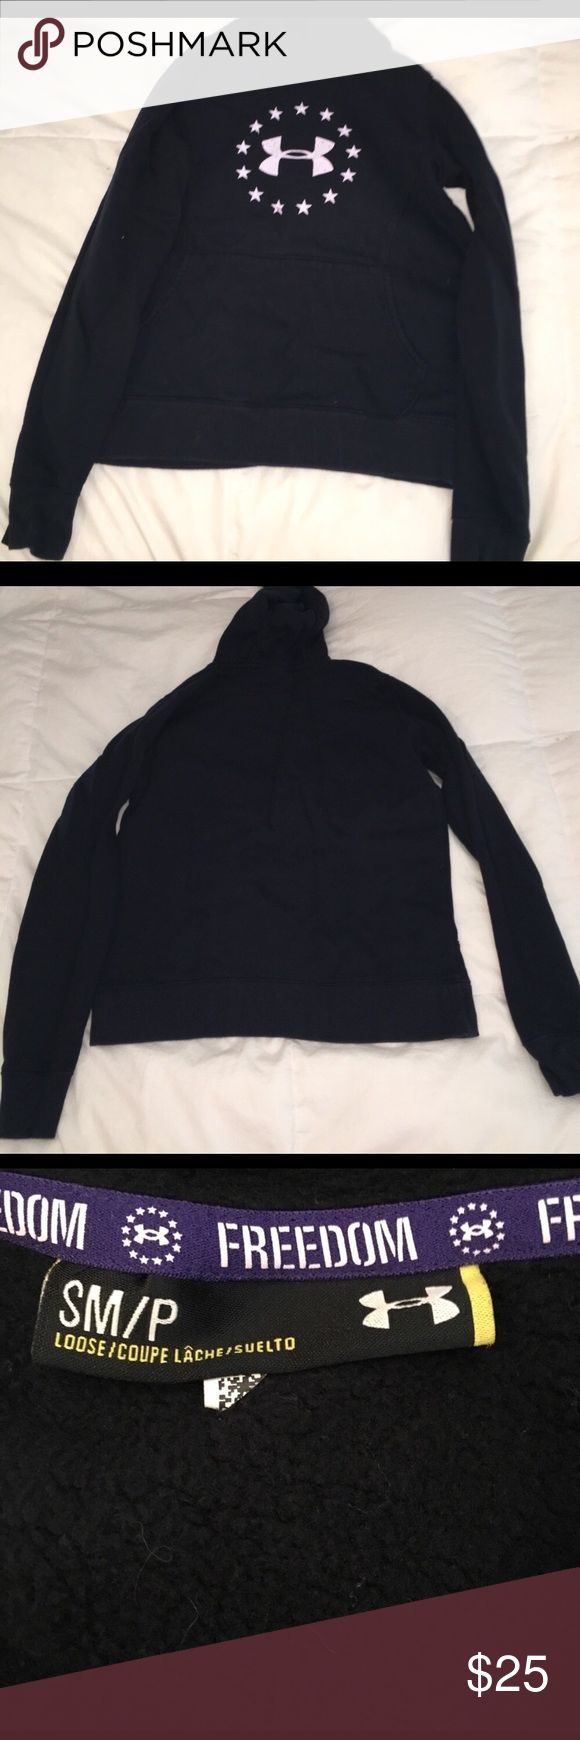 Under armour hoodie Under armour hoodie, stars in a circle around logo, lightly worn, great condition Under Armour Tops Sweatshirts & Hoodies